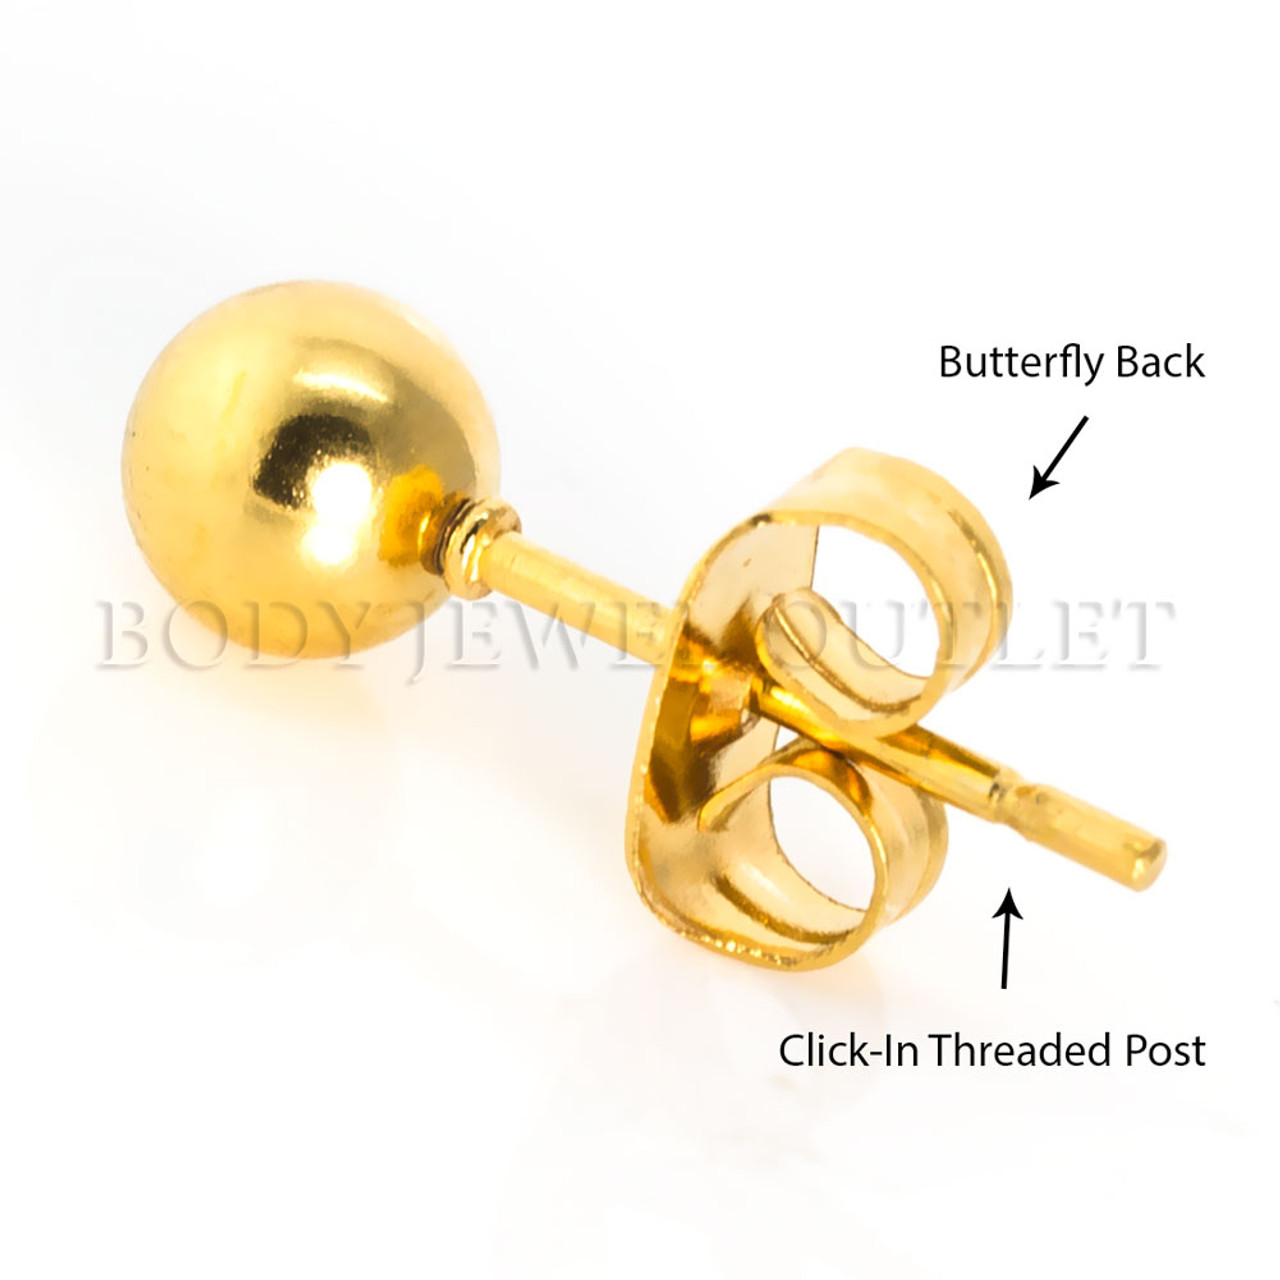 7MM Gold IP Ball Stud - 316L Stainless Steel Earring - Pair (2 Pieces)